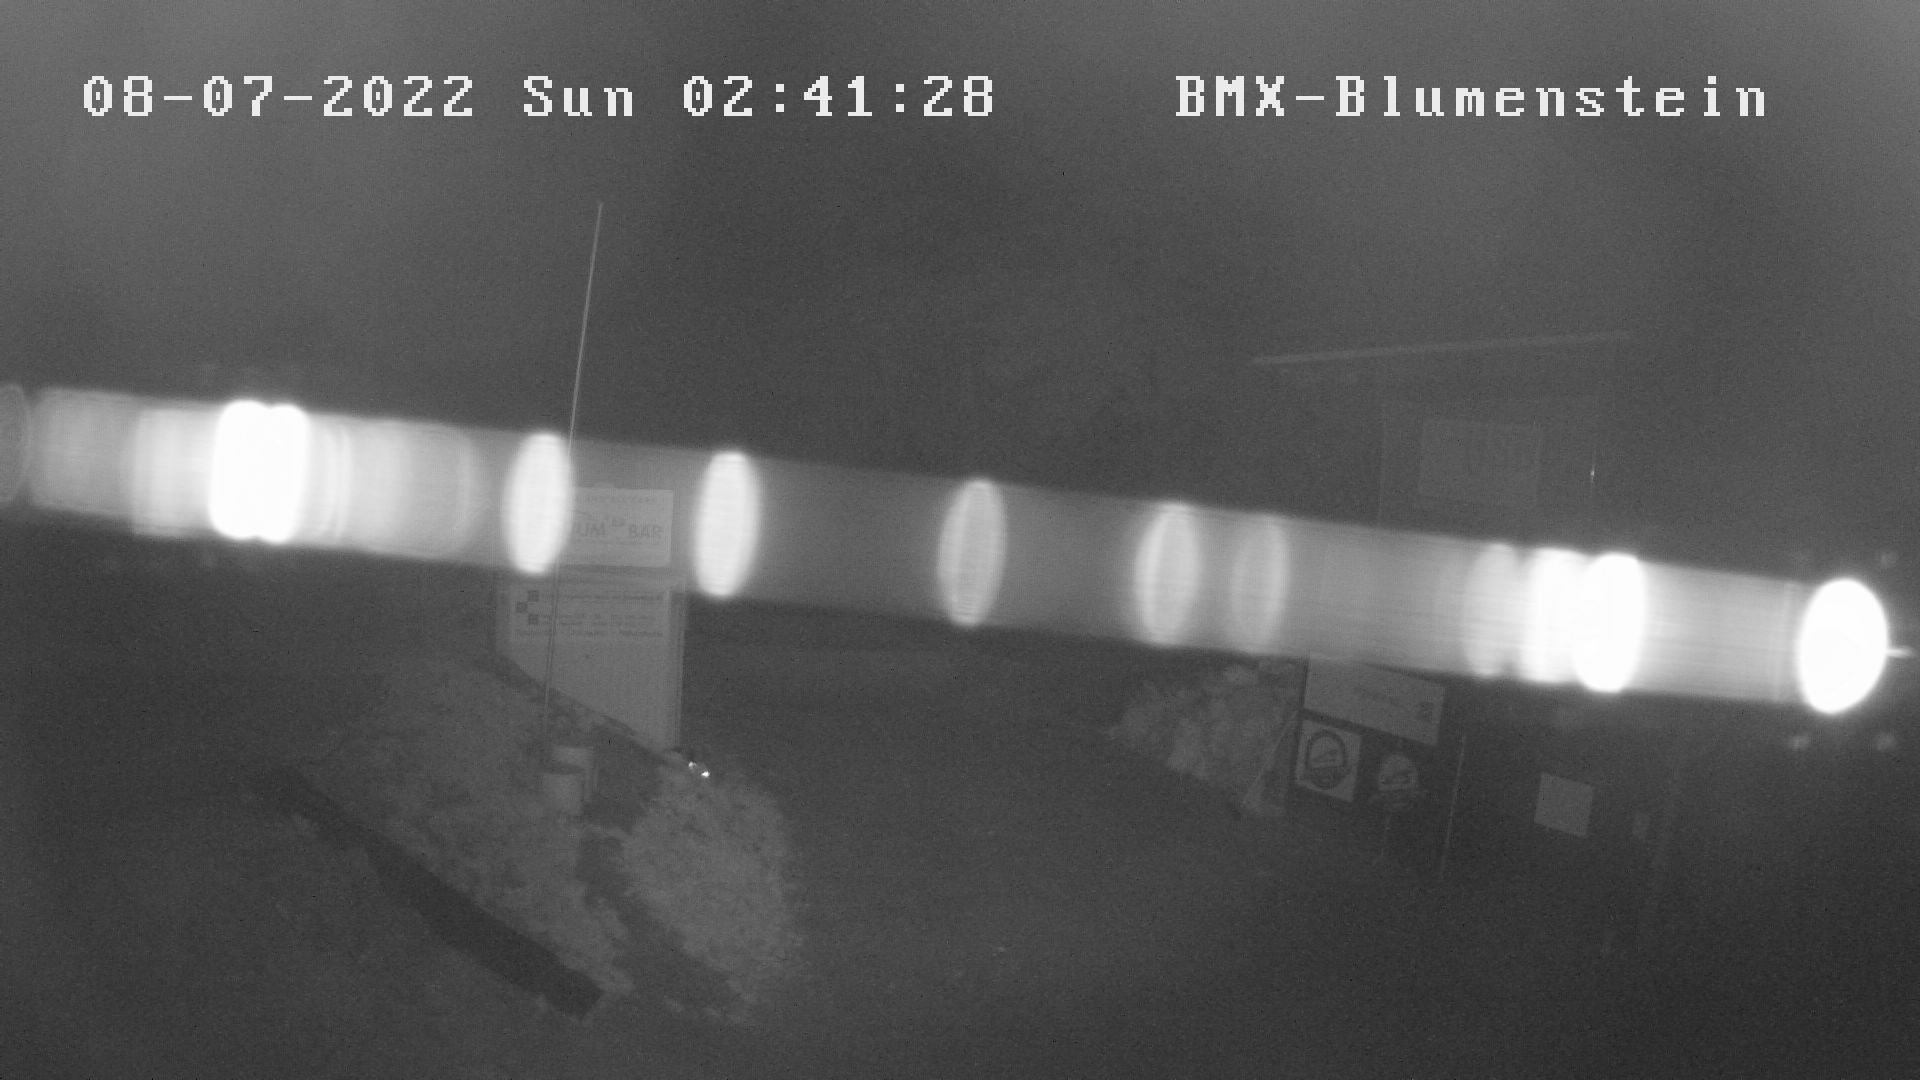 Webcam - BMX Blumenstein